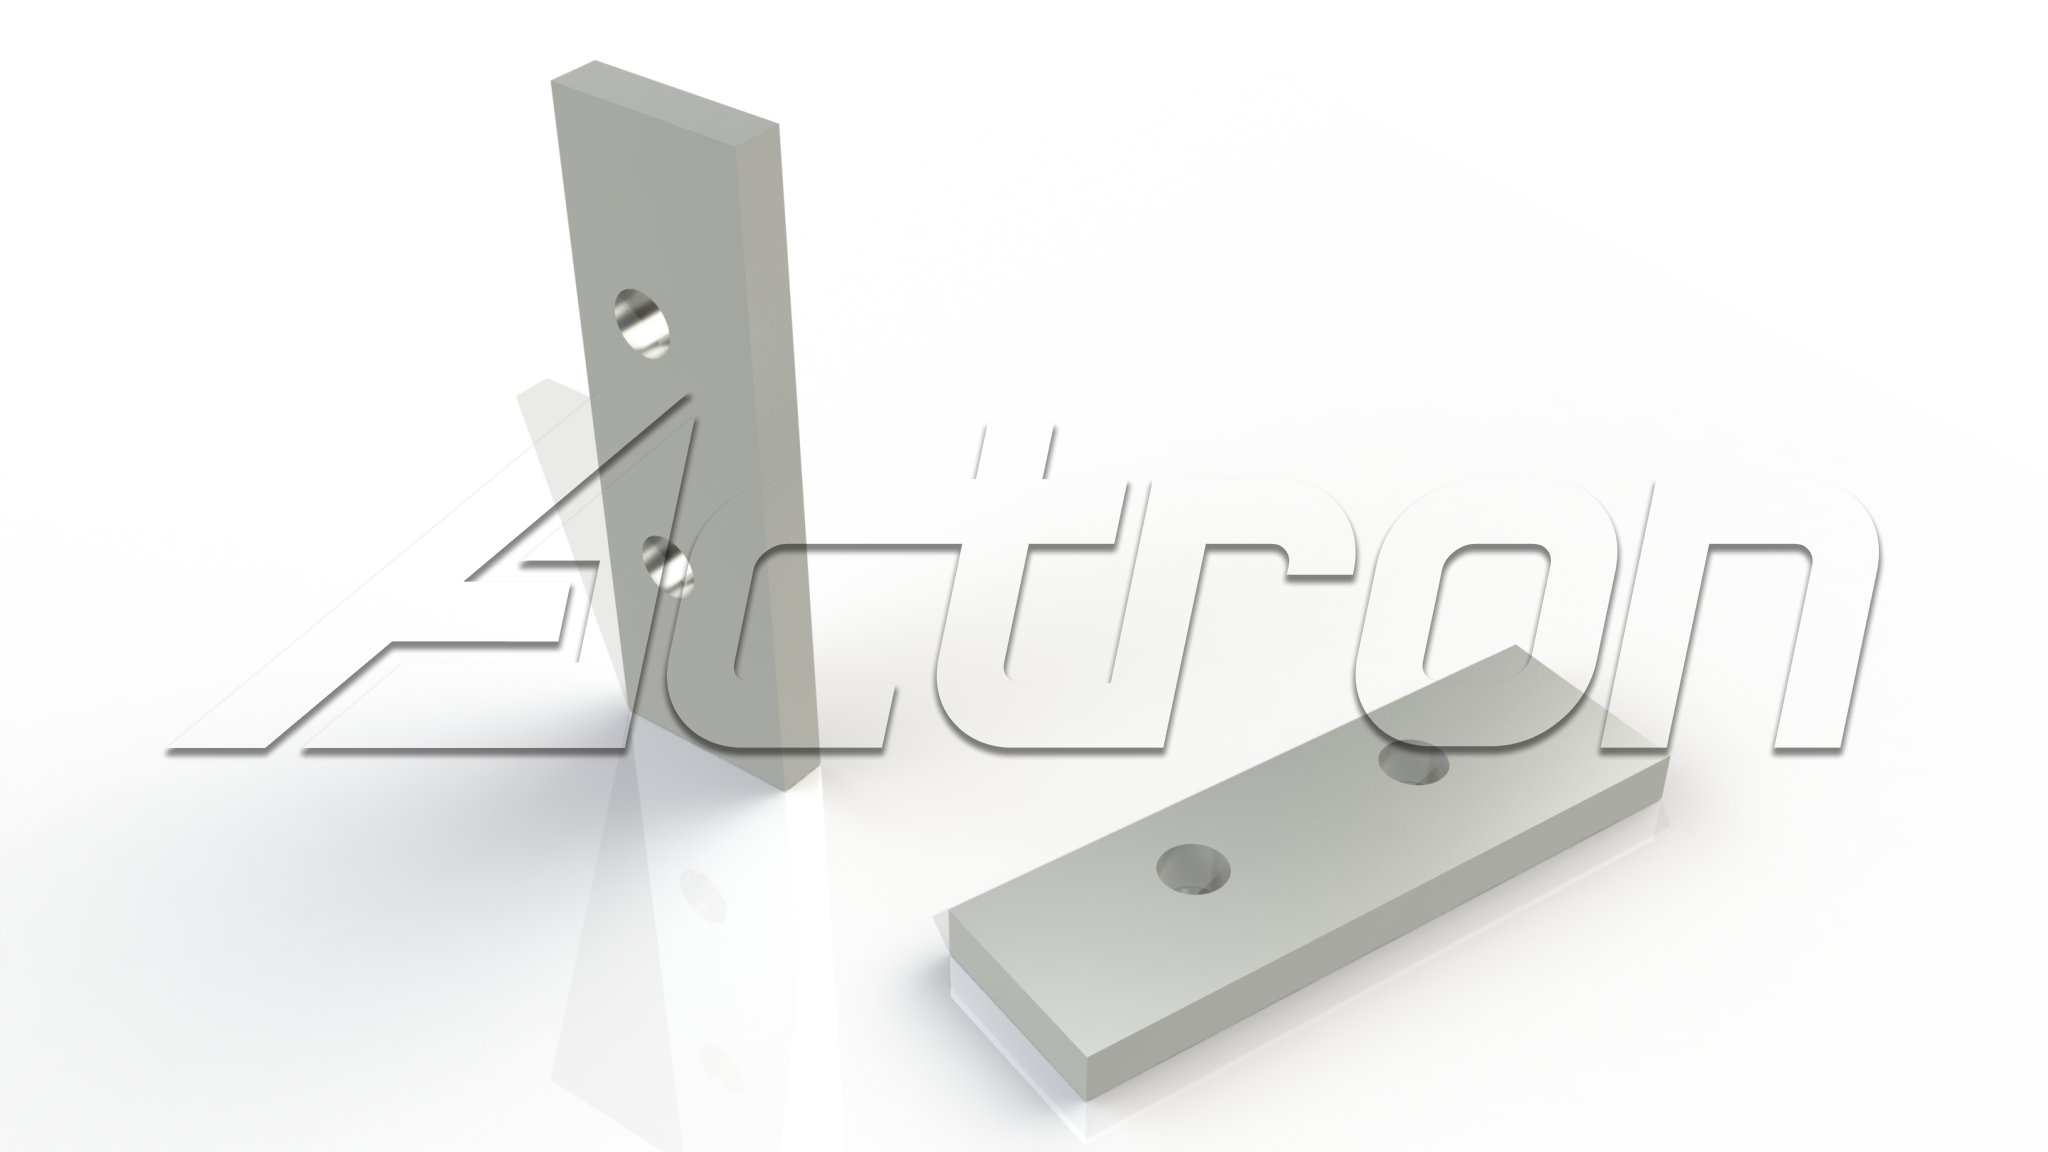 mounting-hardware-8211-nut-bars-5061-a53200.jpg